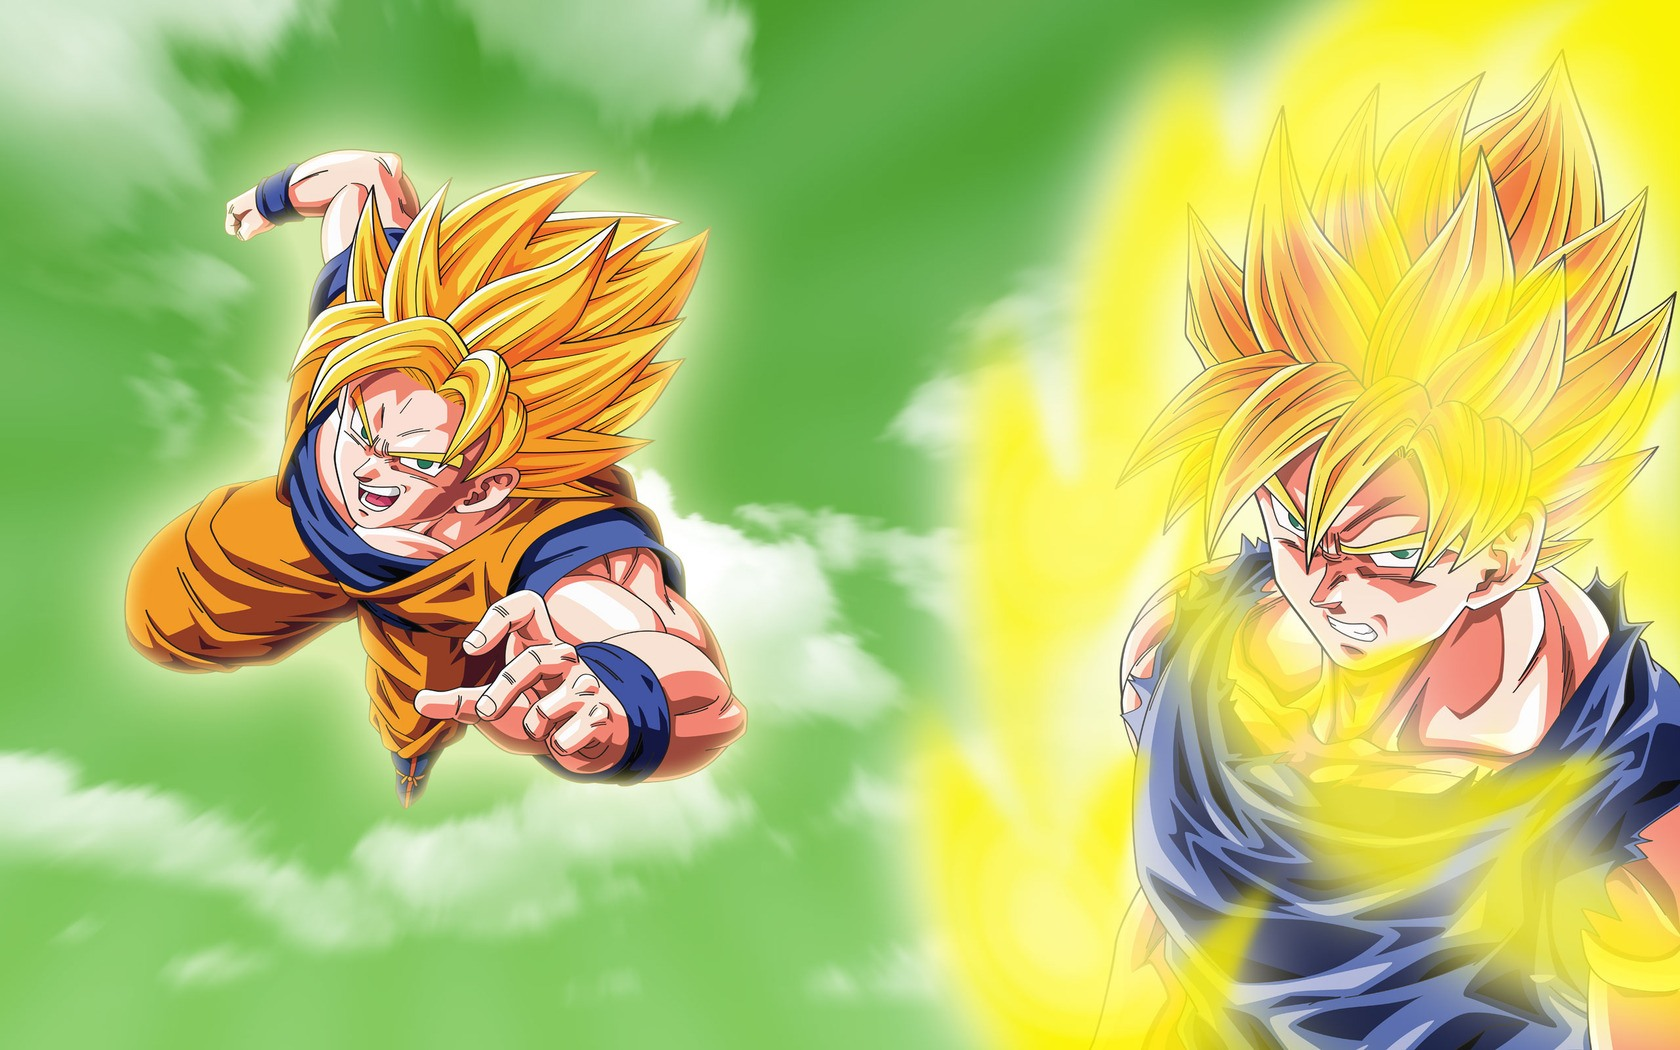 Dragon Ball Z Wallpapers And Backgrounds All About Dragon World 1680x1050